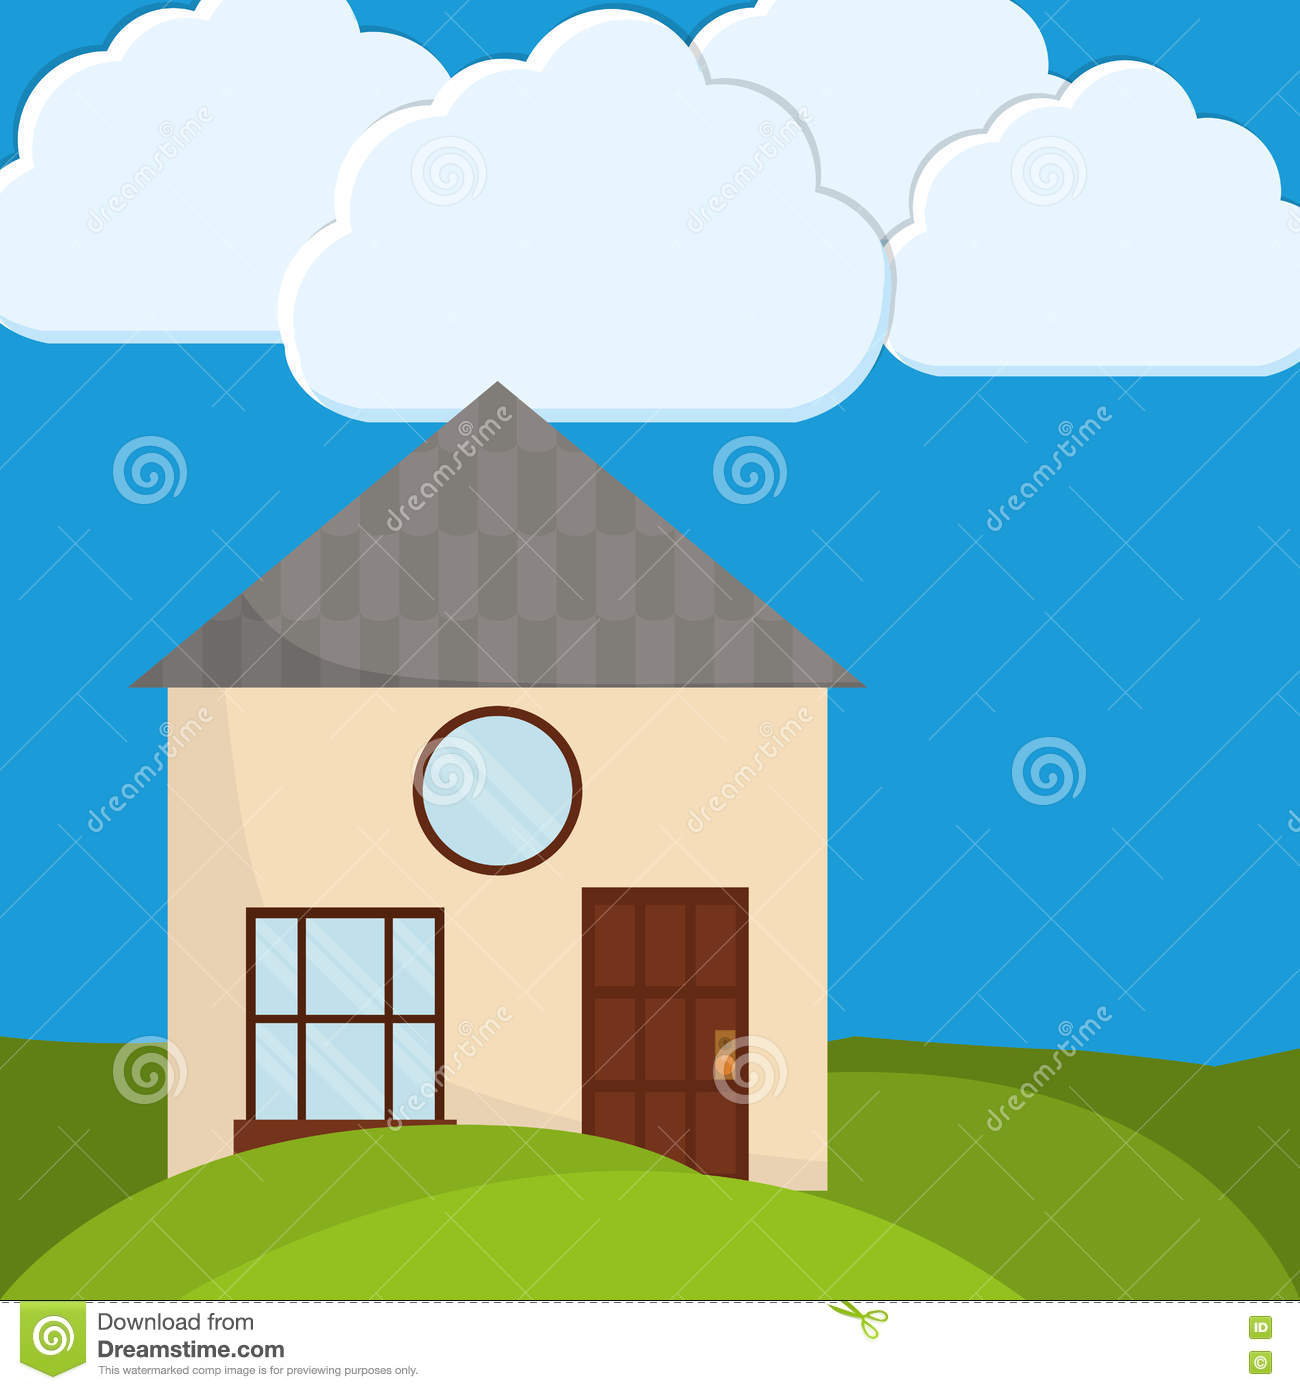 Family House Home Icon Landscape Illustration Graphic